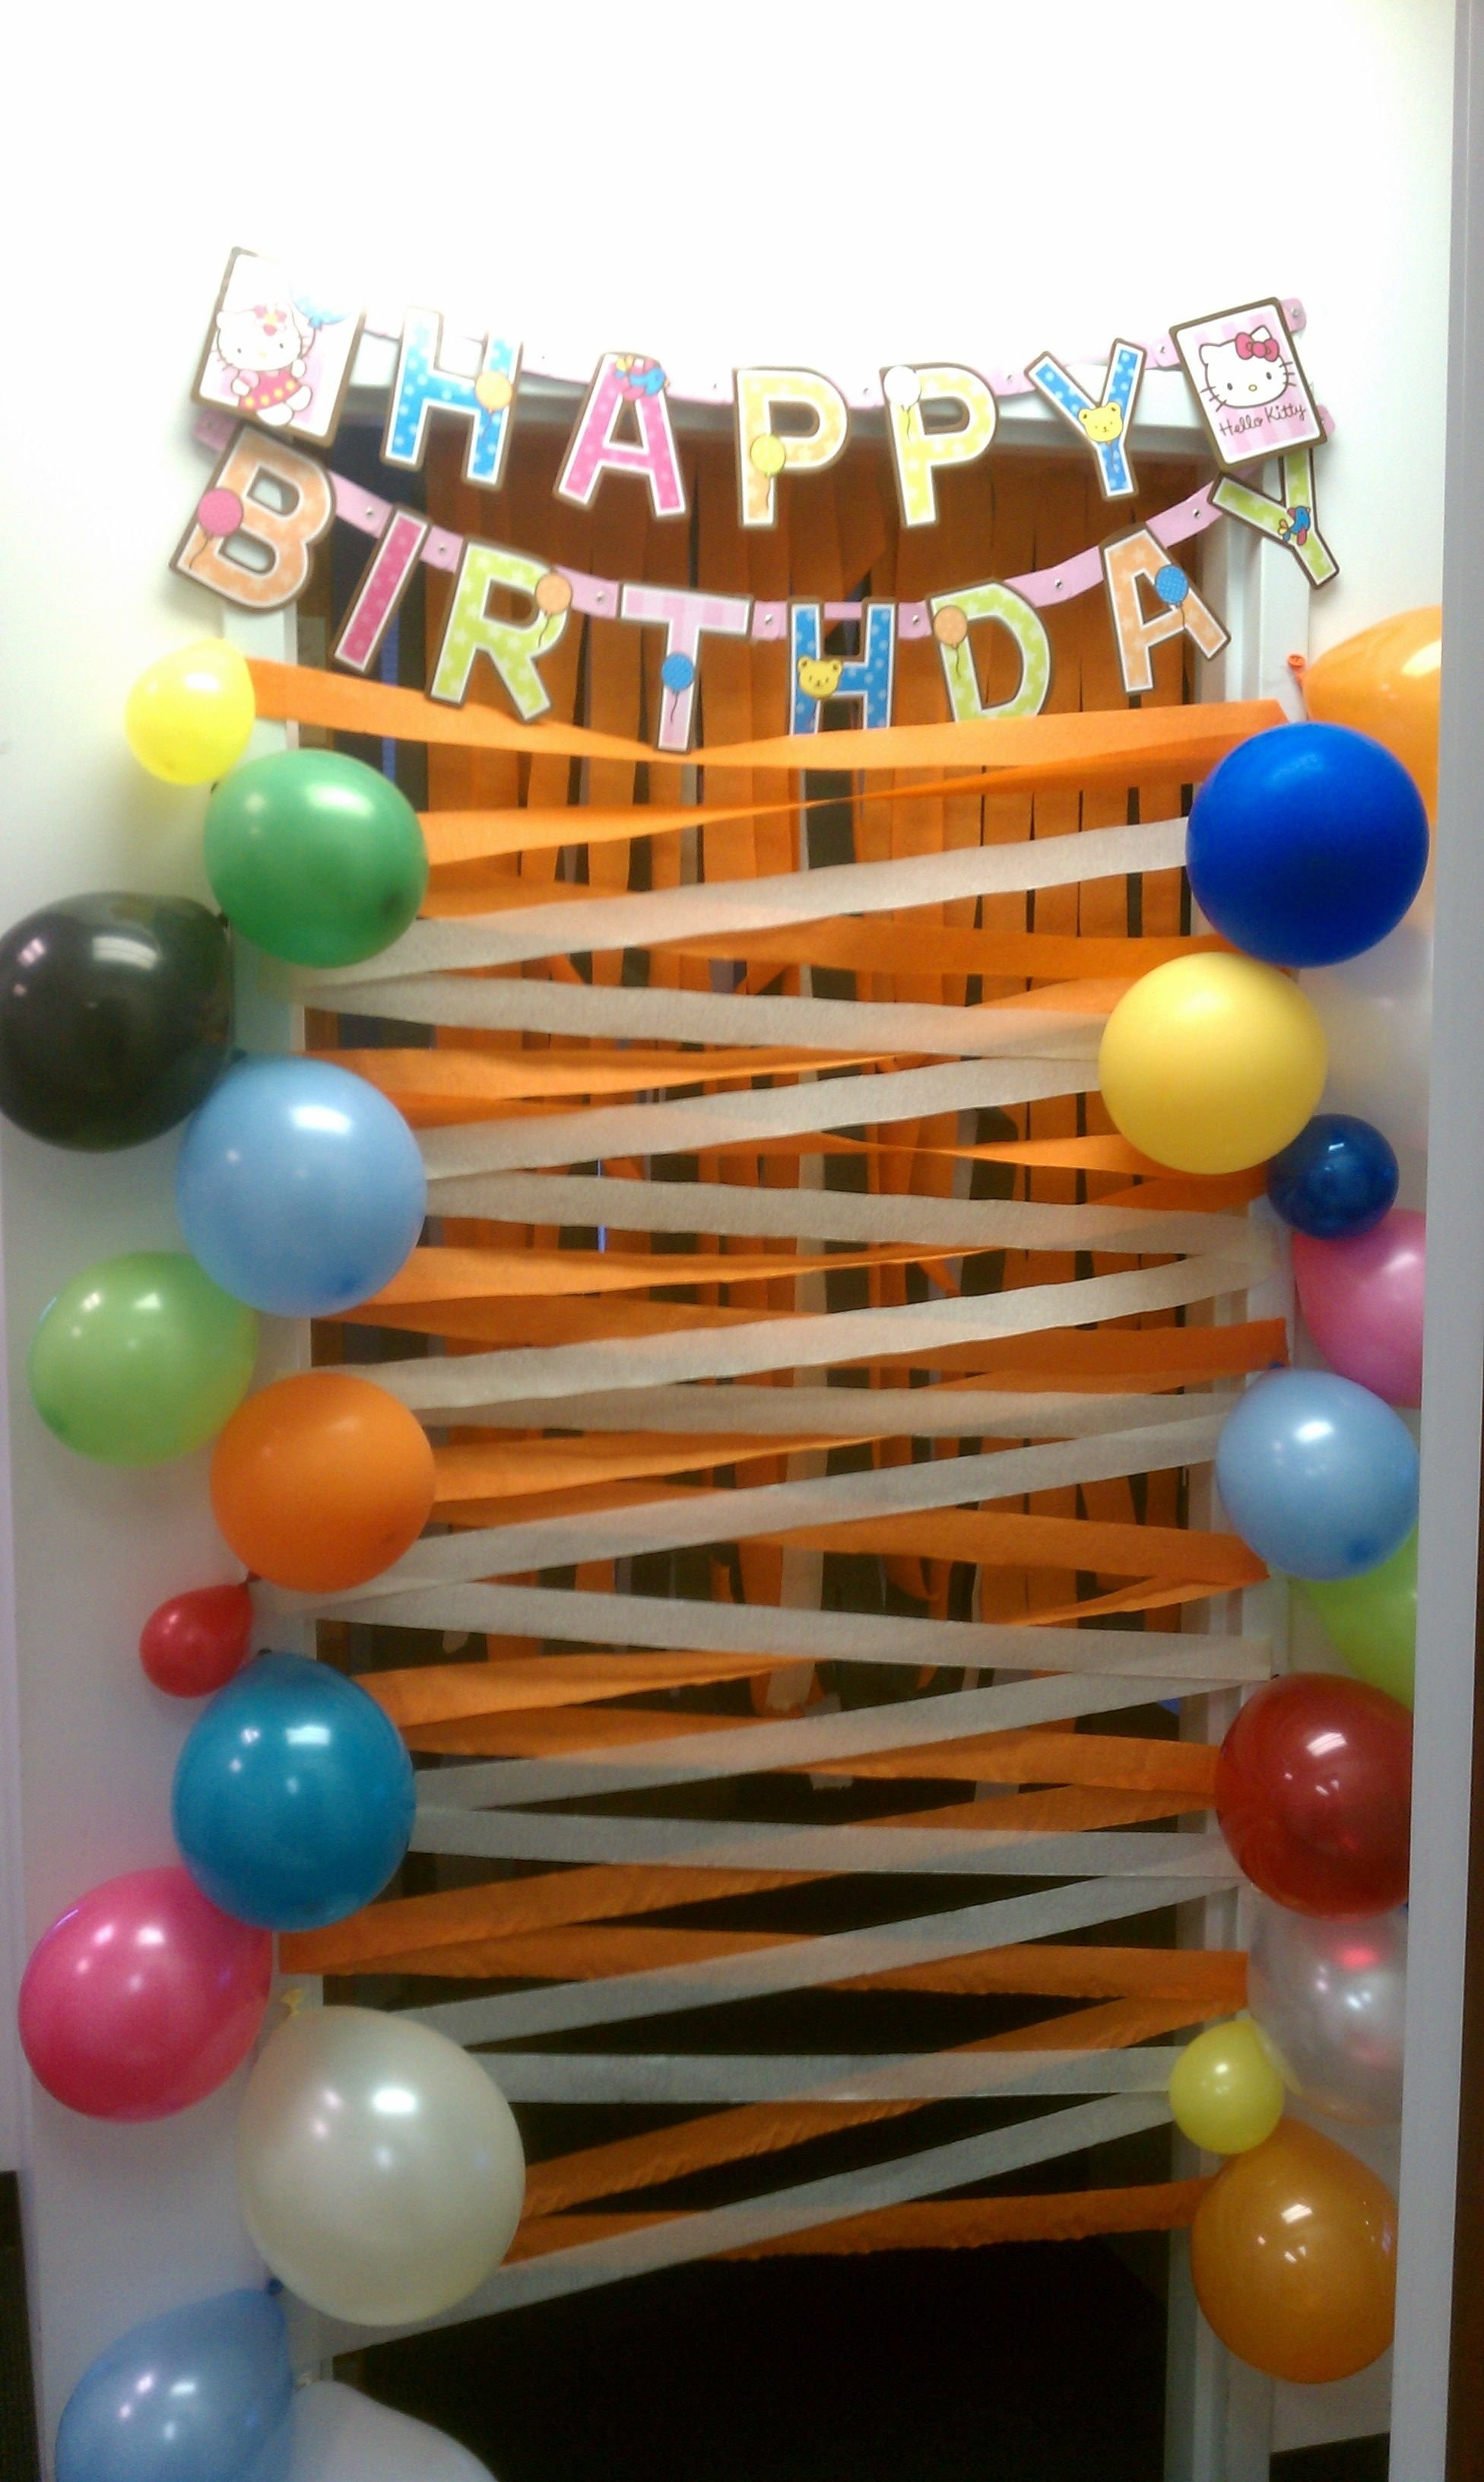 10 Attractive Surprise Birthday Party Ideas For Adults a nice birthday surprise for my coworker birthday door decorations 4 2020